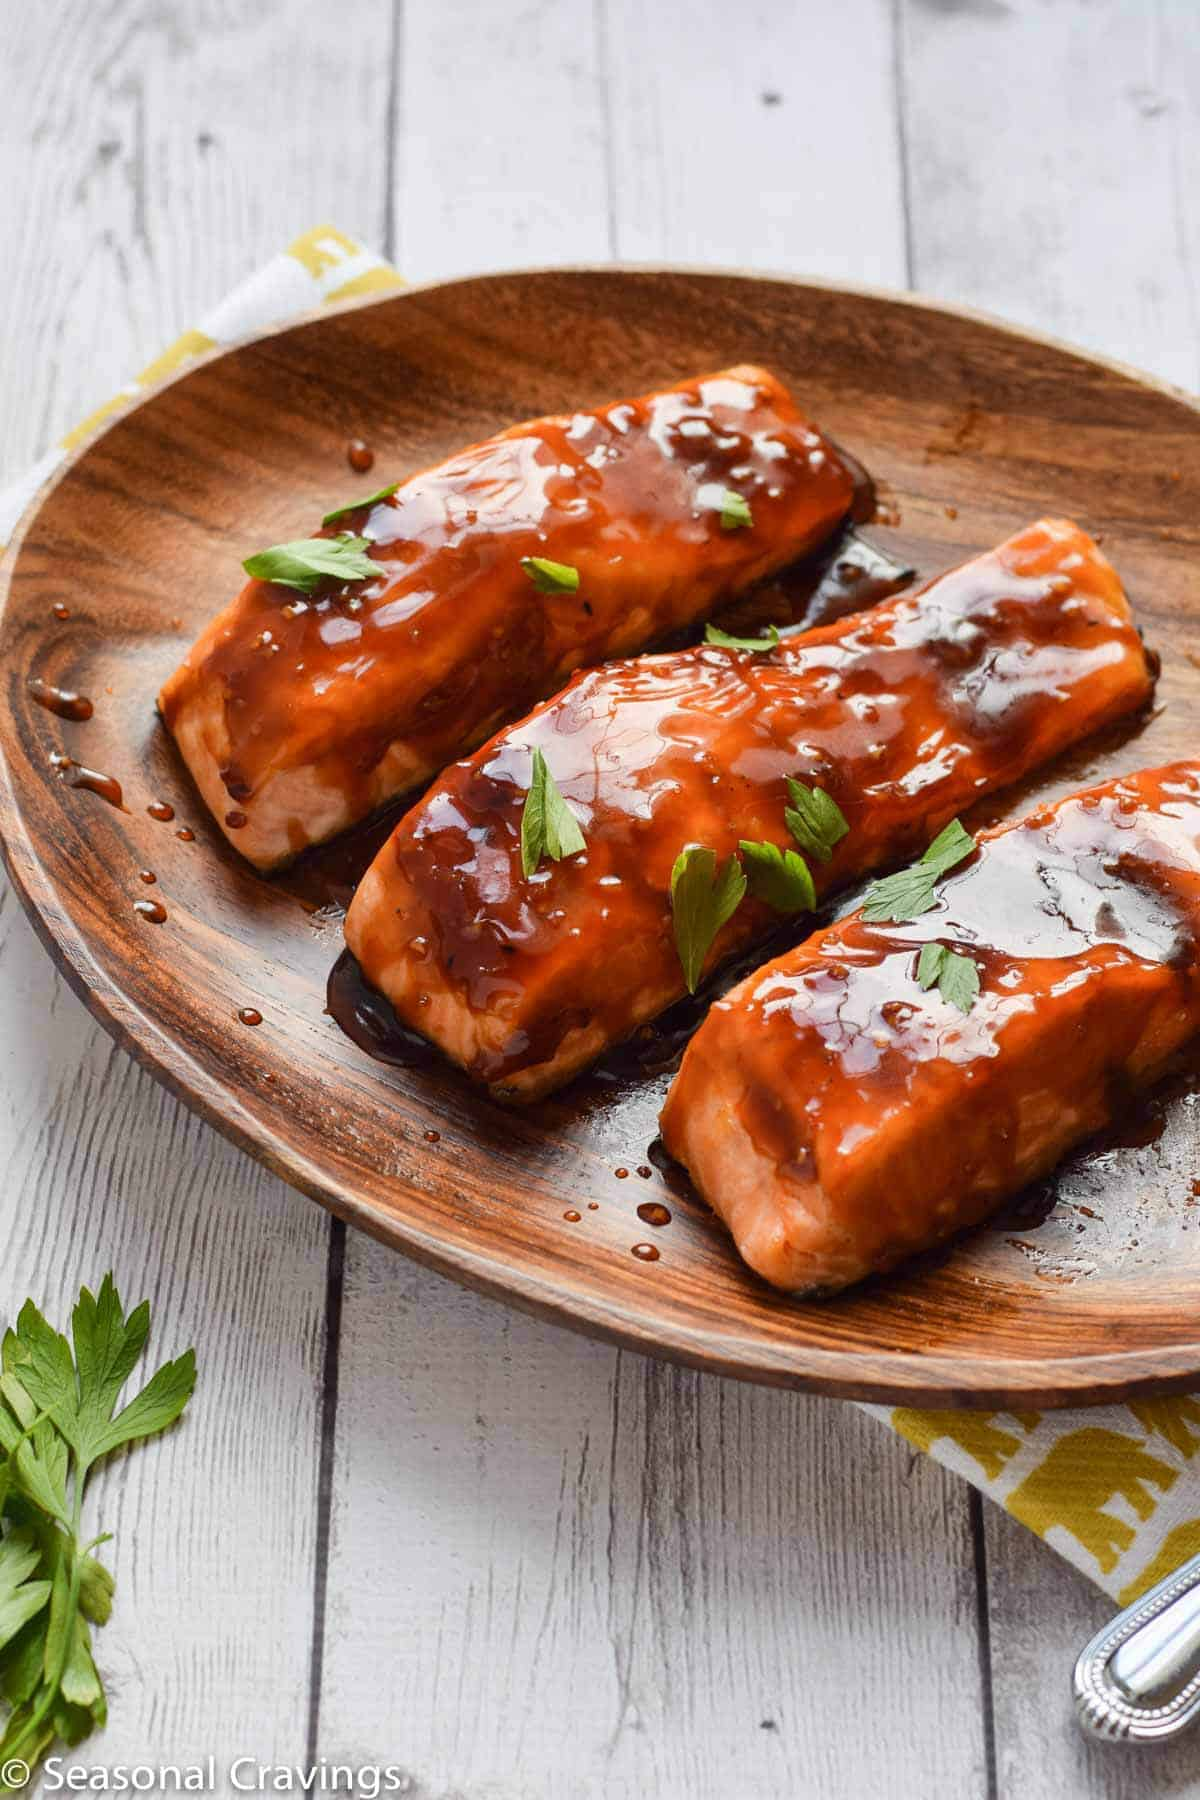 Baked Teriyaki Salmon Recipe Seasonal Cravings